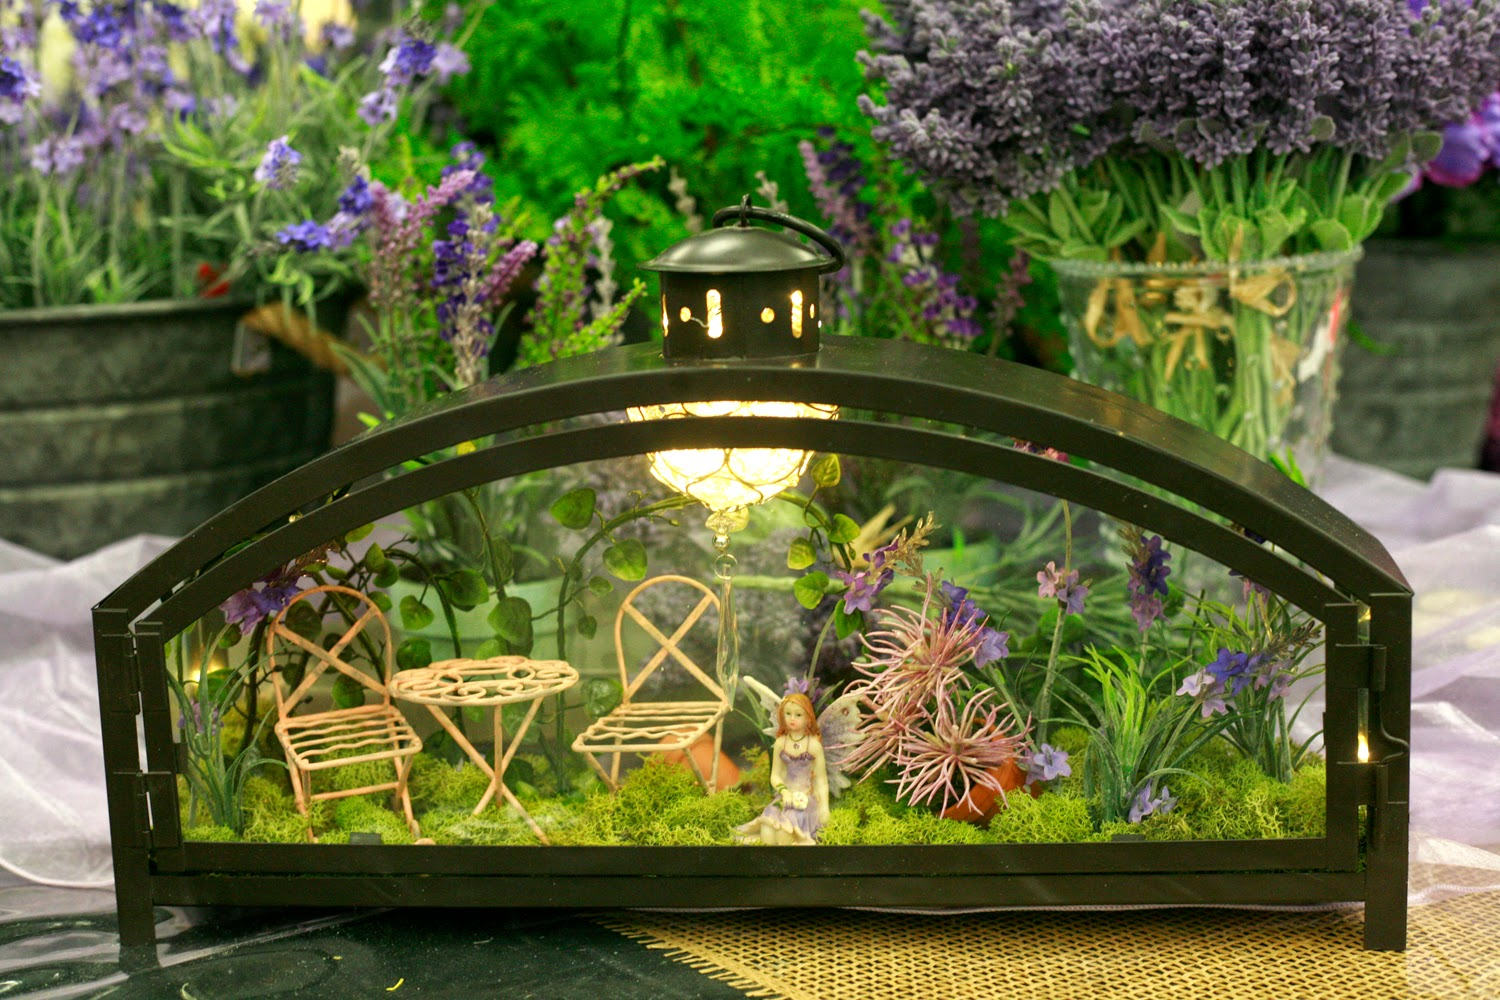 Ben franklin crafts and frame shop creative fairy garden for Craft ideas for fairy gardens